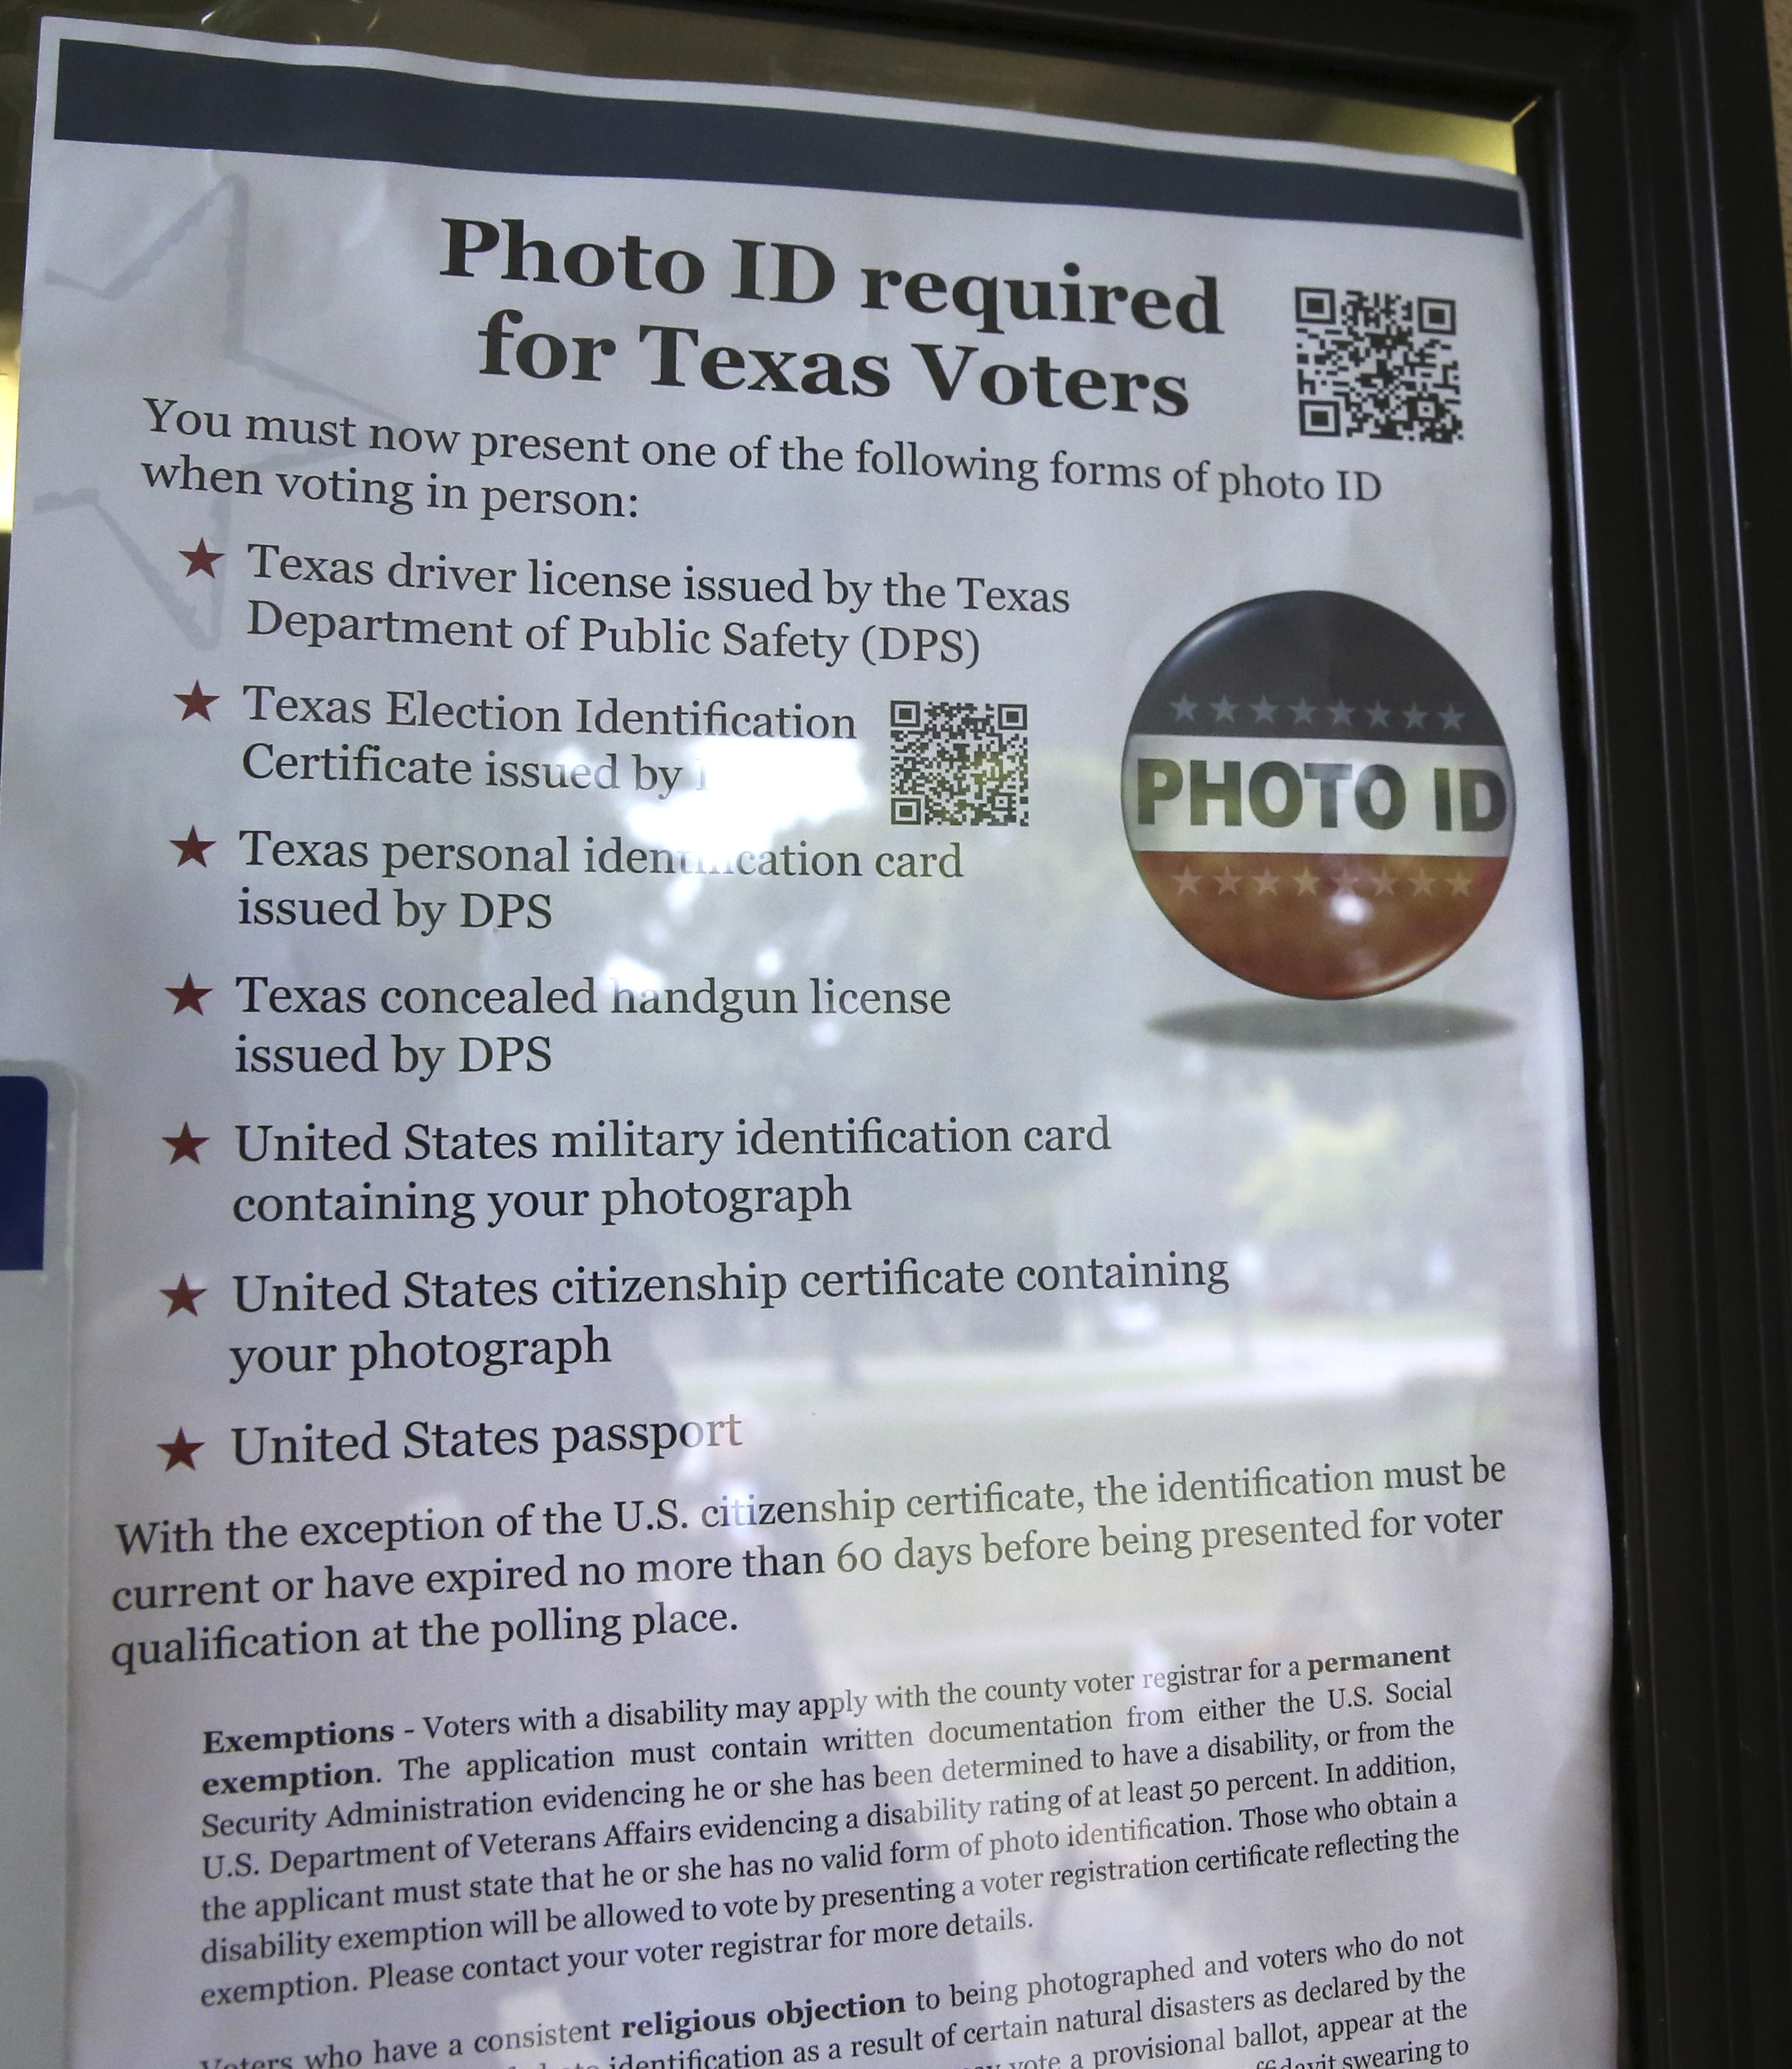 An official poster announcing the photo ID requirements for Texas voters in 2013.